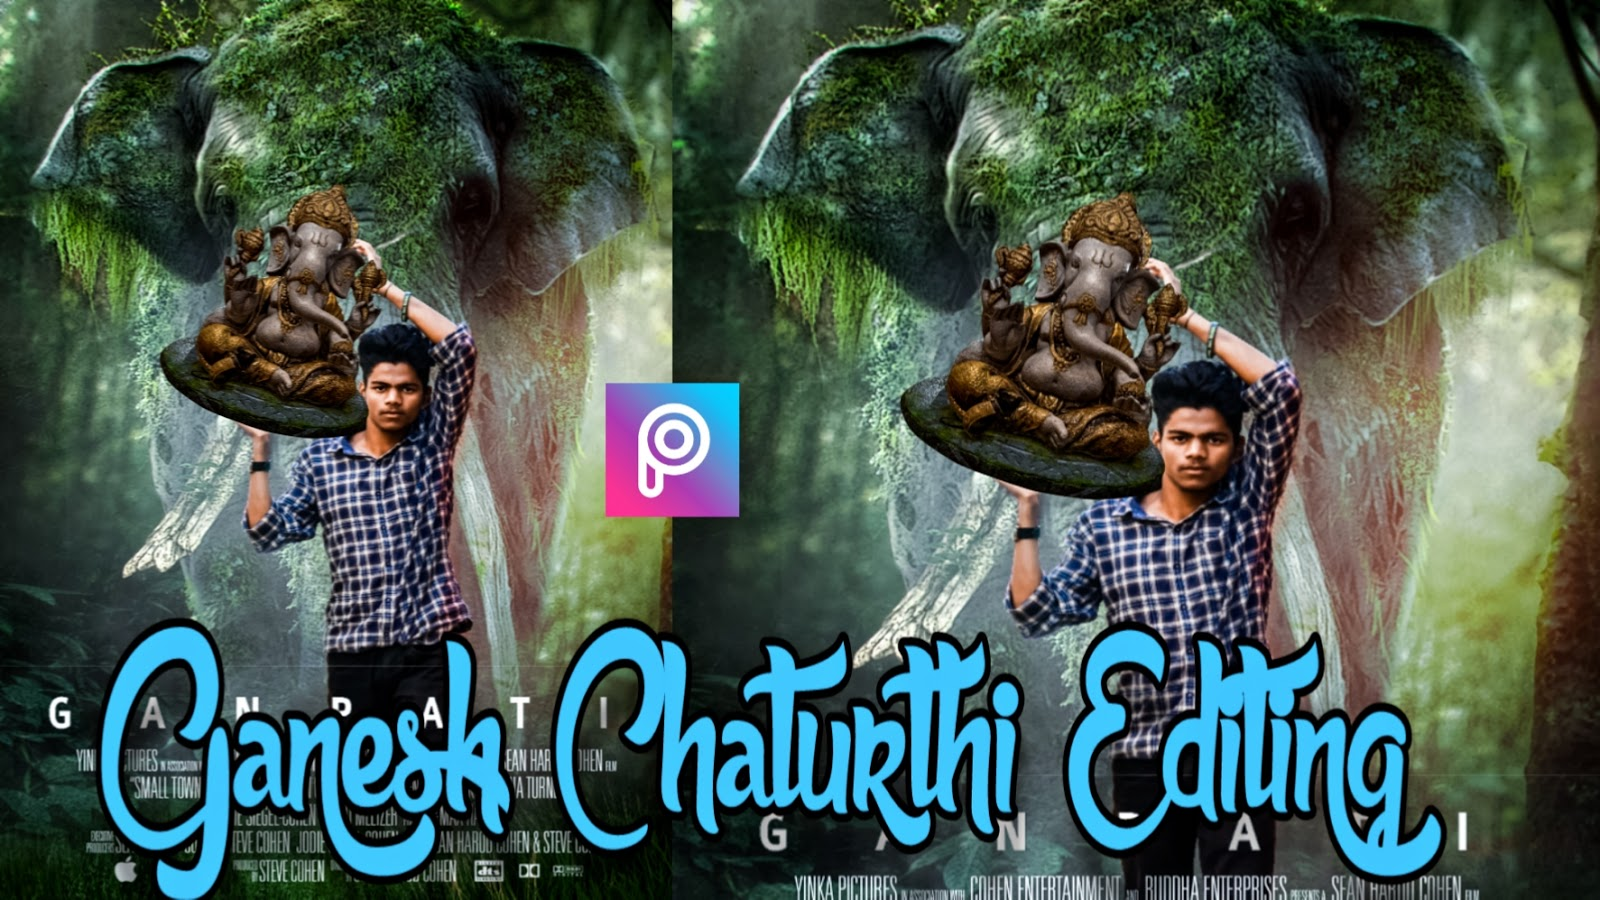 Ganesh Chaturthi Special Photo Editing Background Pngs For Picsart Photoshop Hd